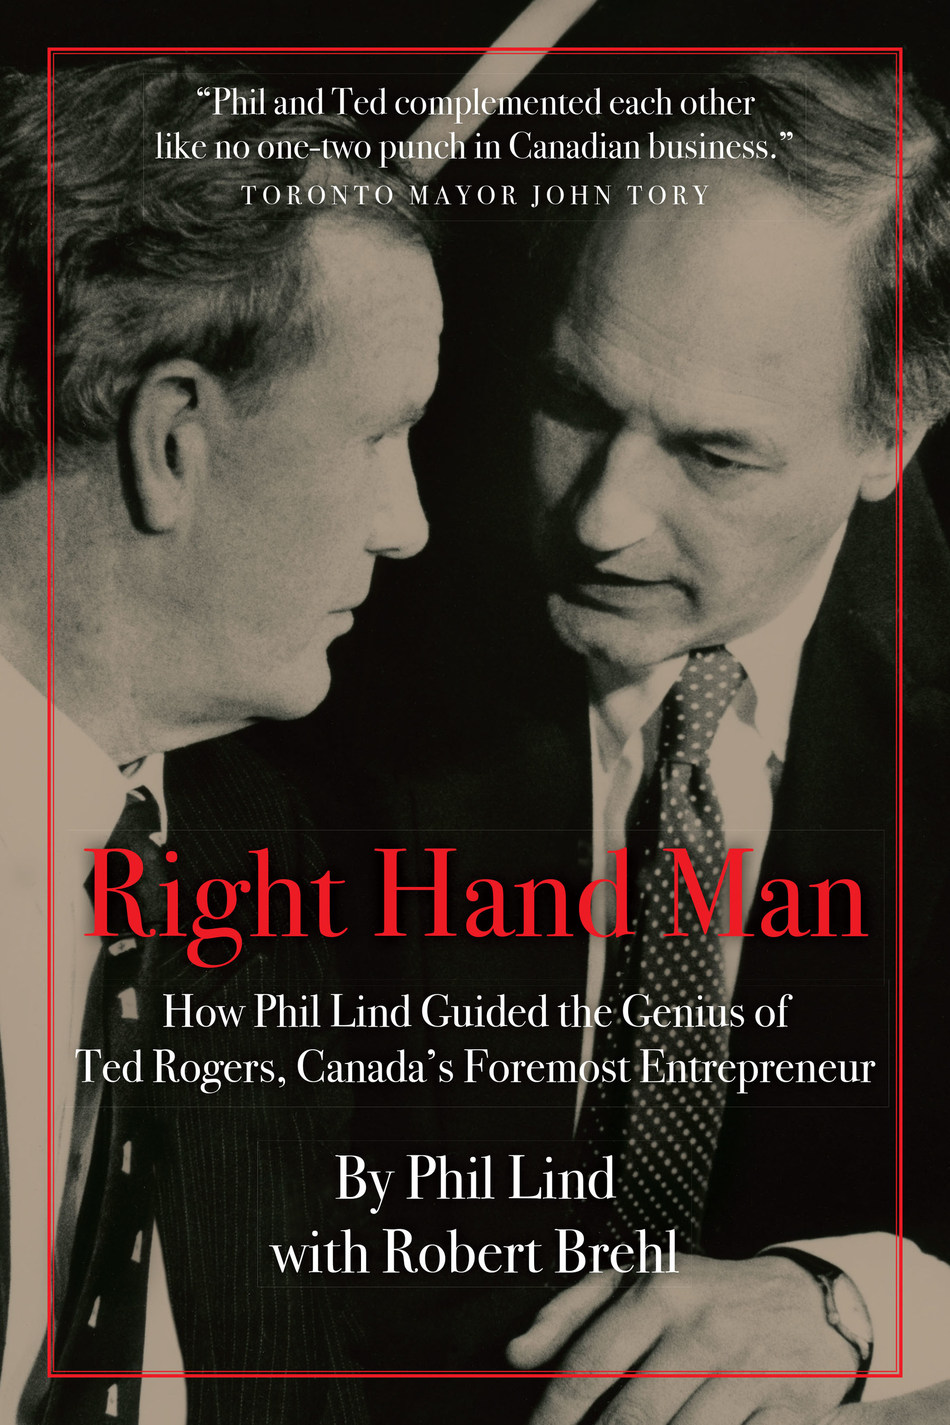 Right Hand Man by Phil Lind (CNW Group/Barlow Books)